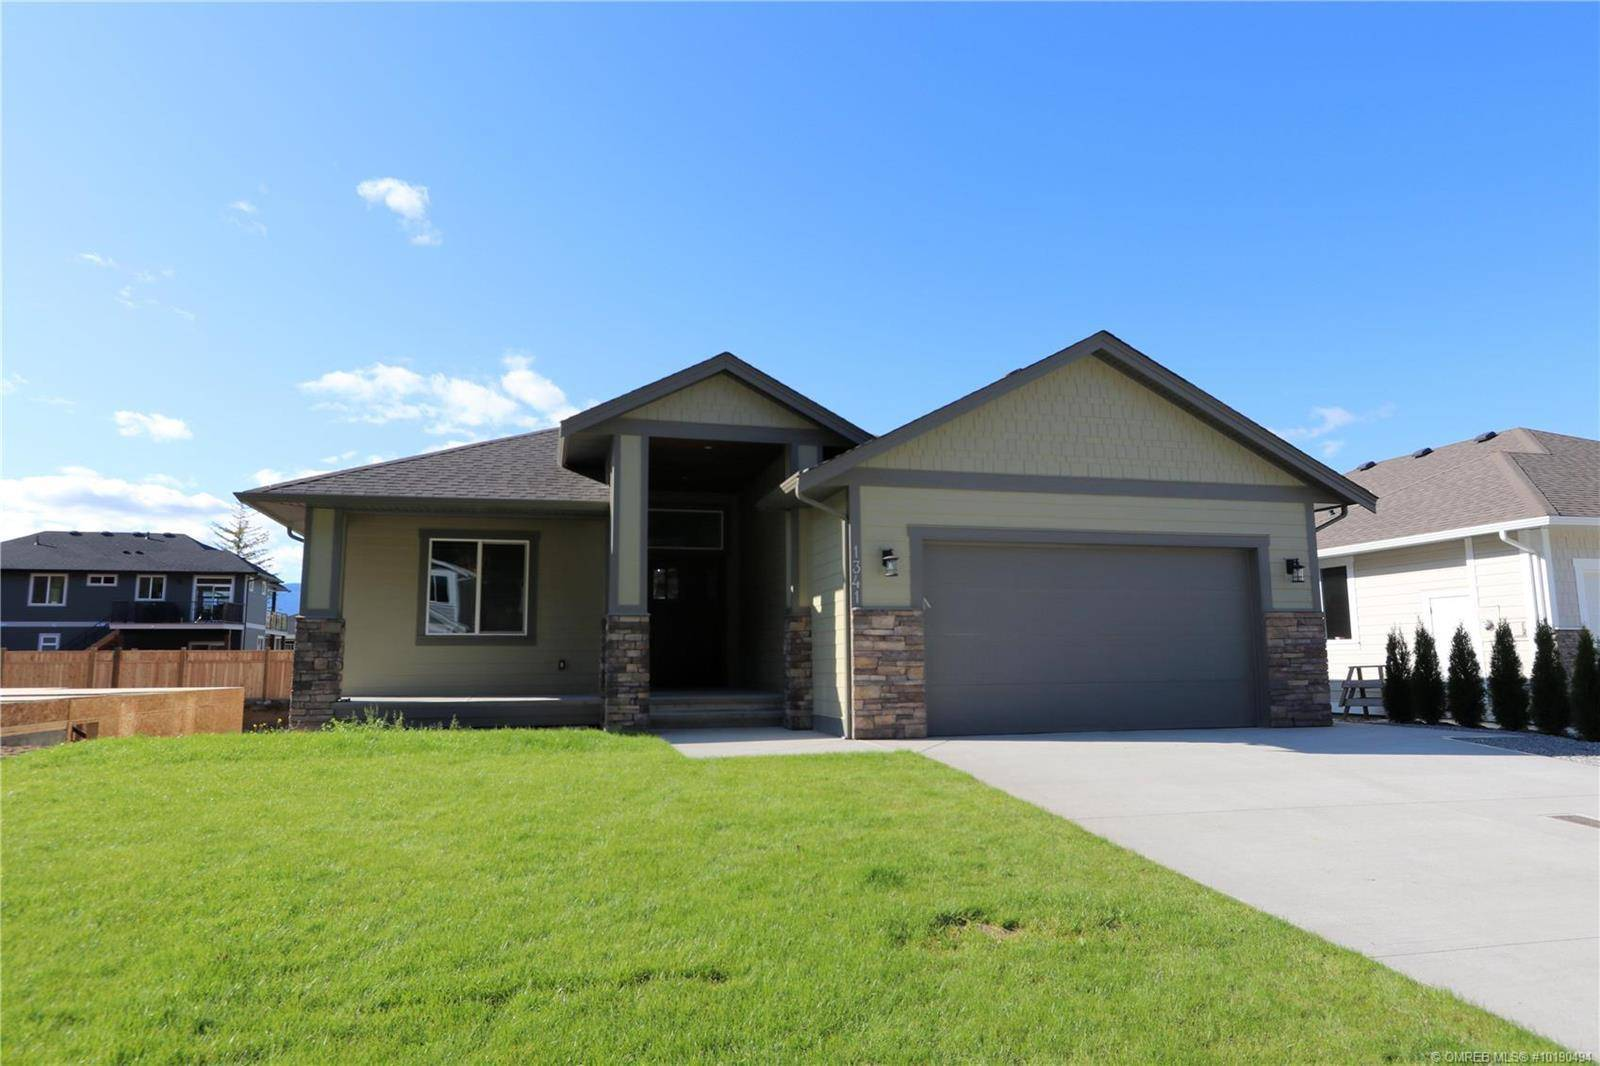 House for sale at 1341 24 St Southeast Salmon Arm British Columbia - MLS: 10190494